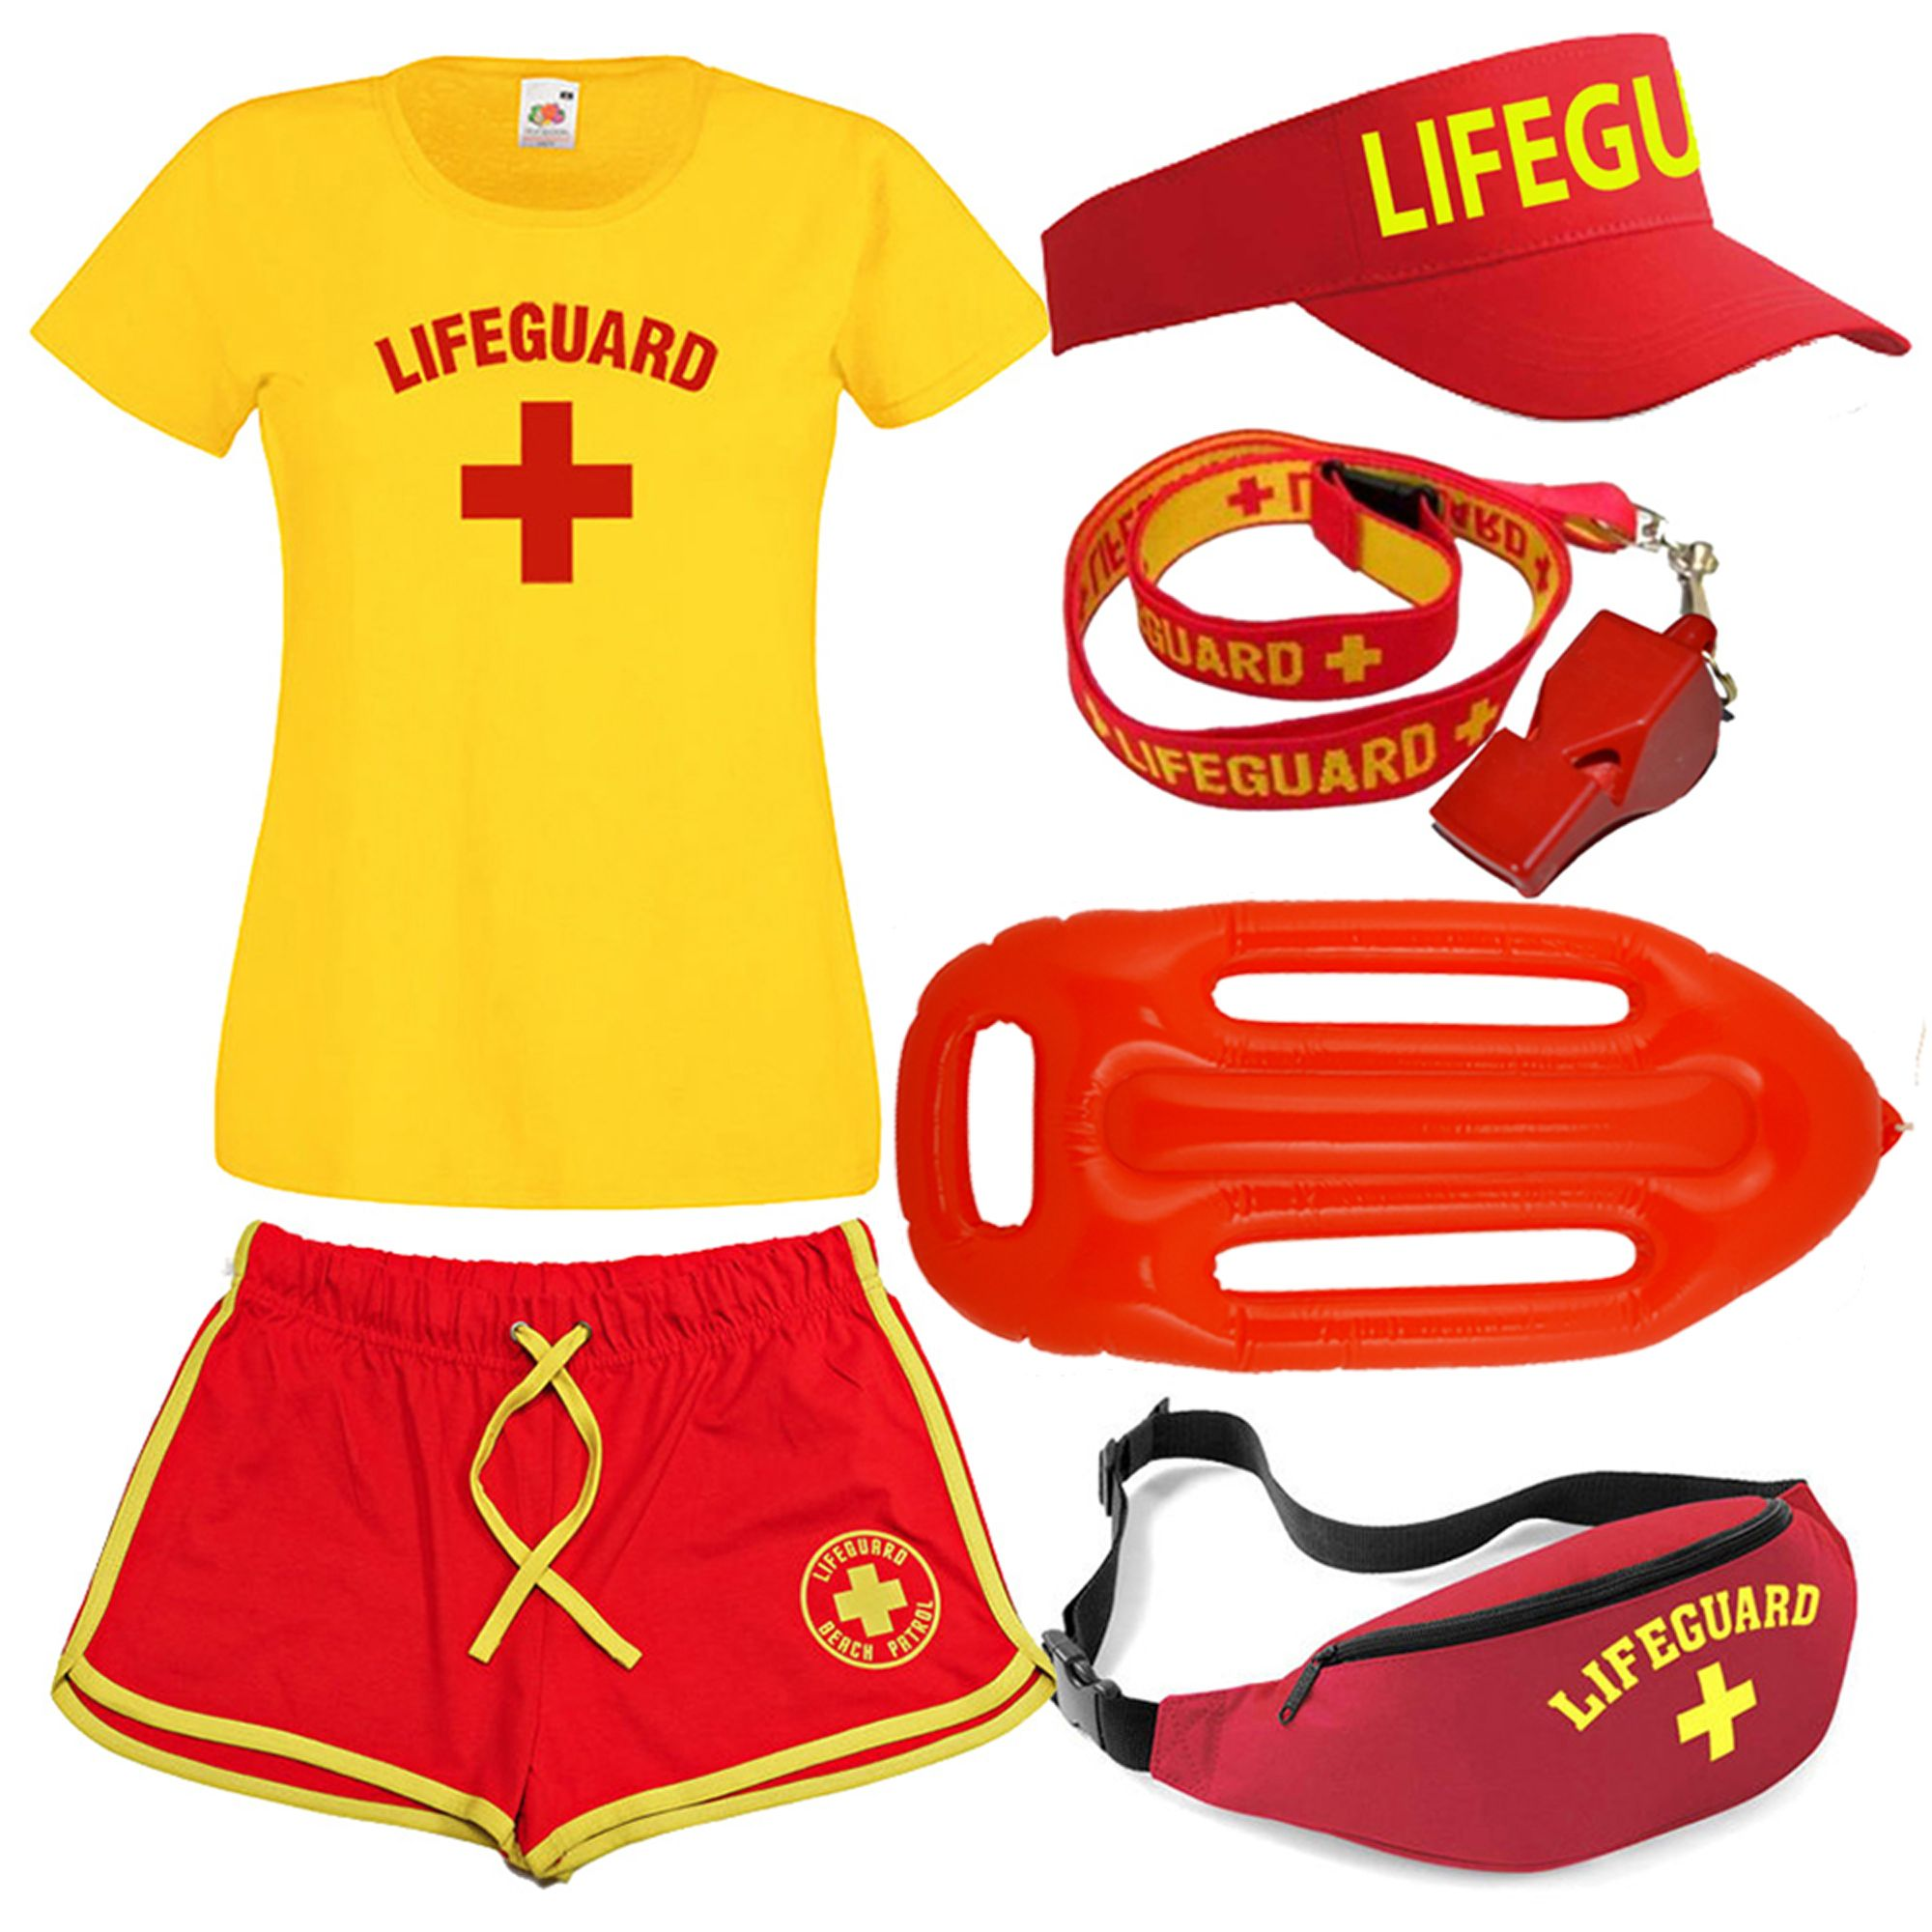 6f15628825a1 LADIES LIFEGUARD + T-SHIRT + SHORTS SETS .